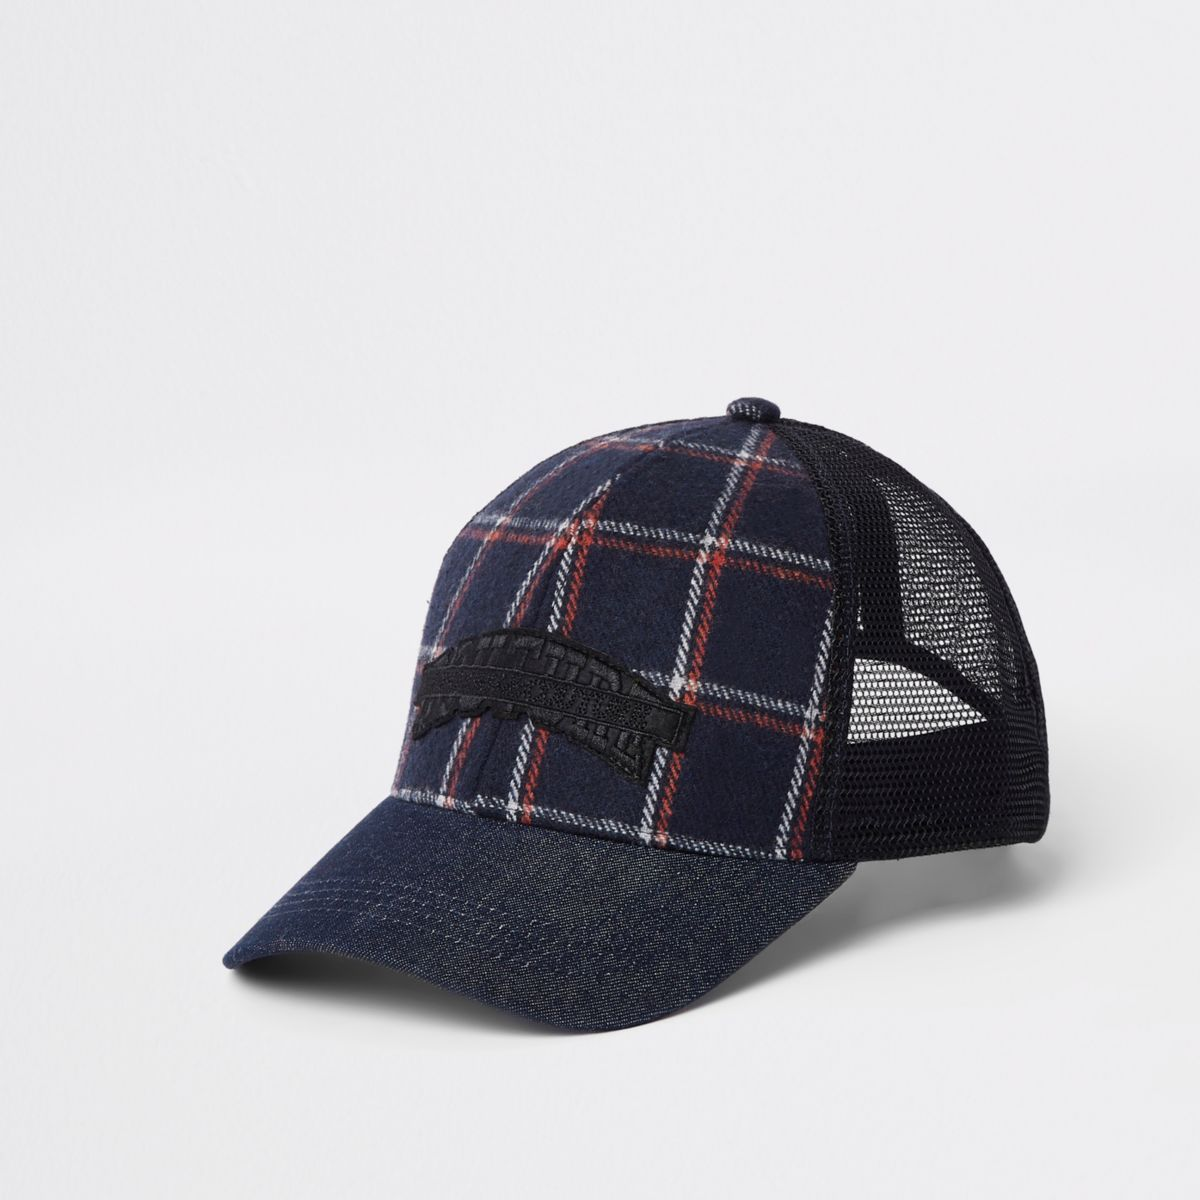 Navy check denim mesh baseball cap